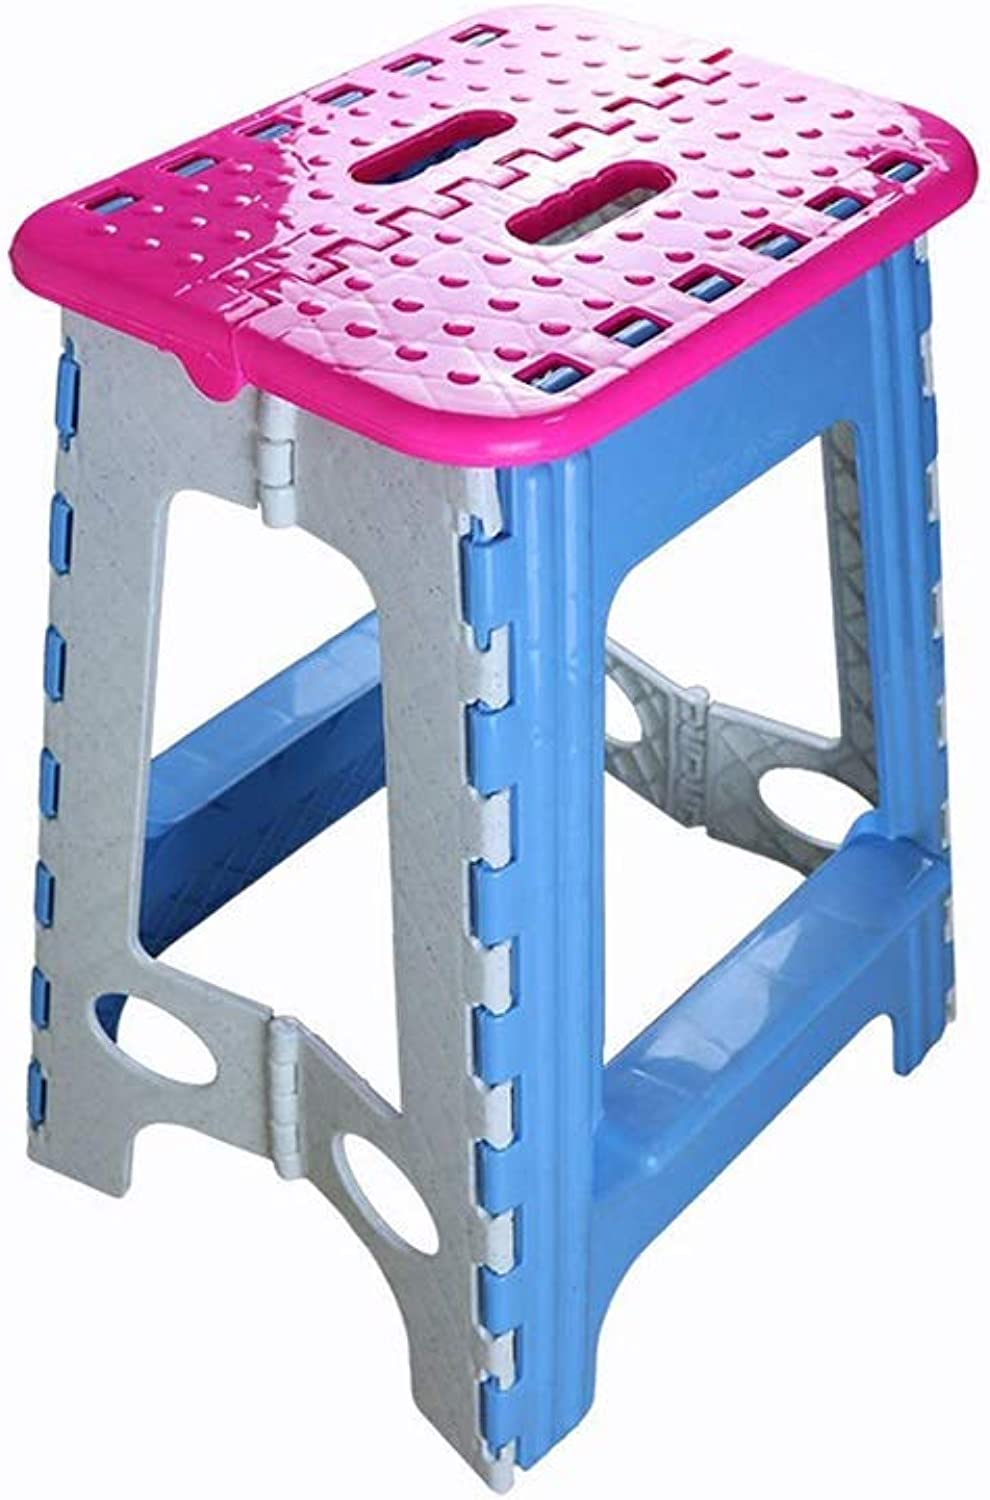 AGLZWY 2 Pcs Folding Step Stool Lightweight Anti Slip Feet Save Space Portable Great for Kids and Adults Kitchen Garden Bathroom Holds up to 100 Kg (color   bluee, Size   30X24X46CM)